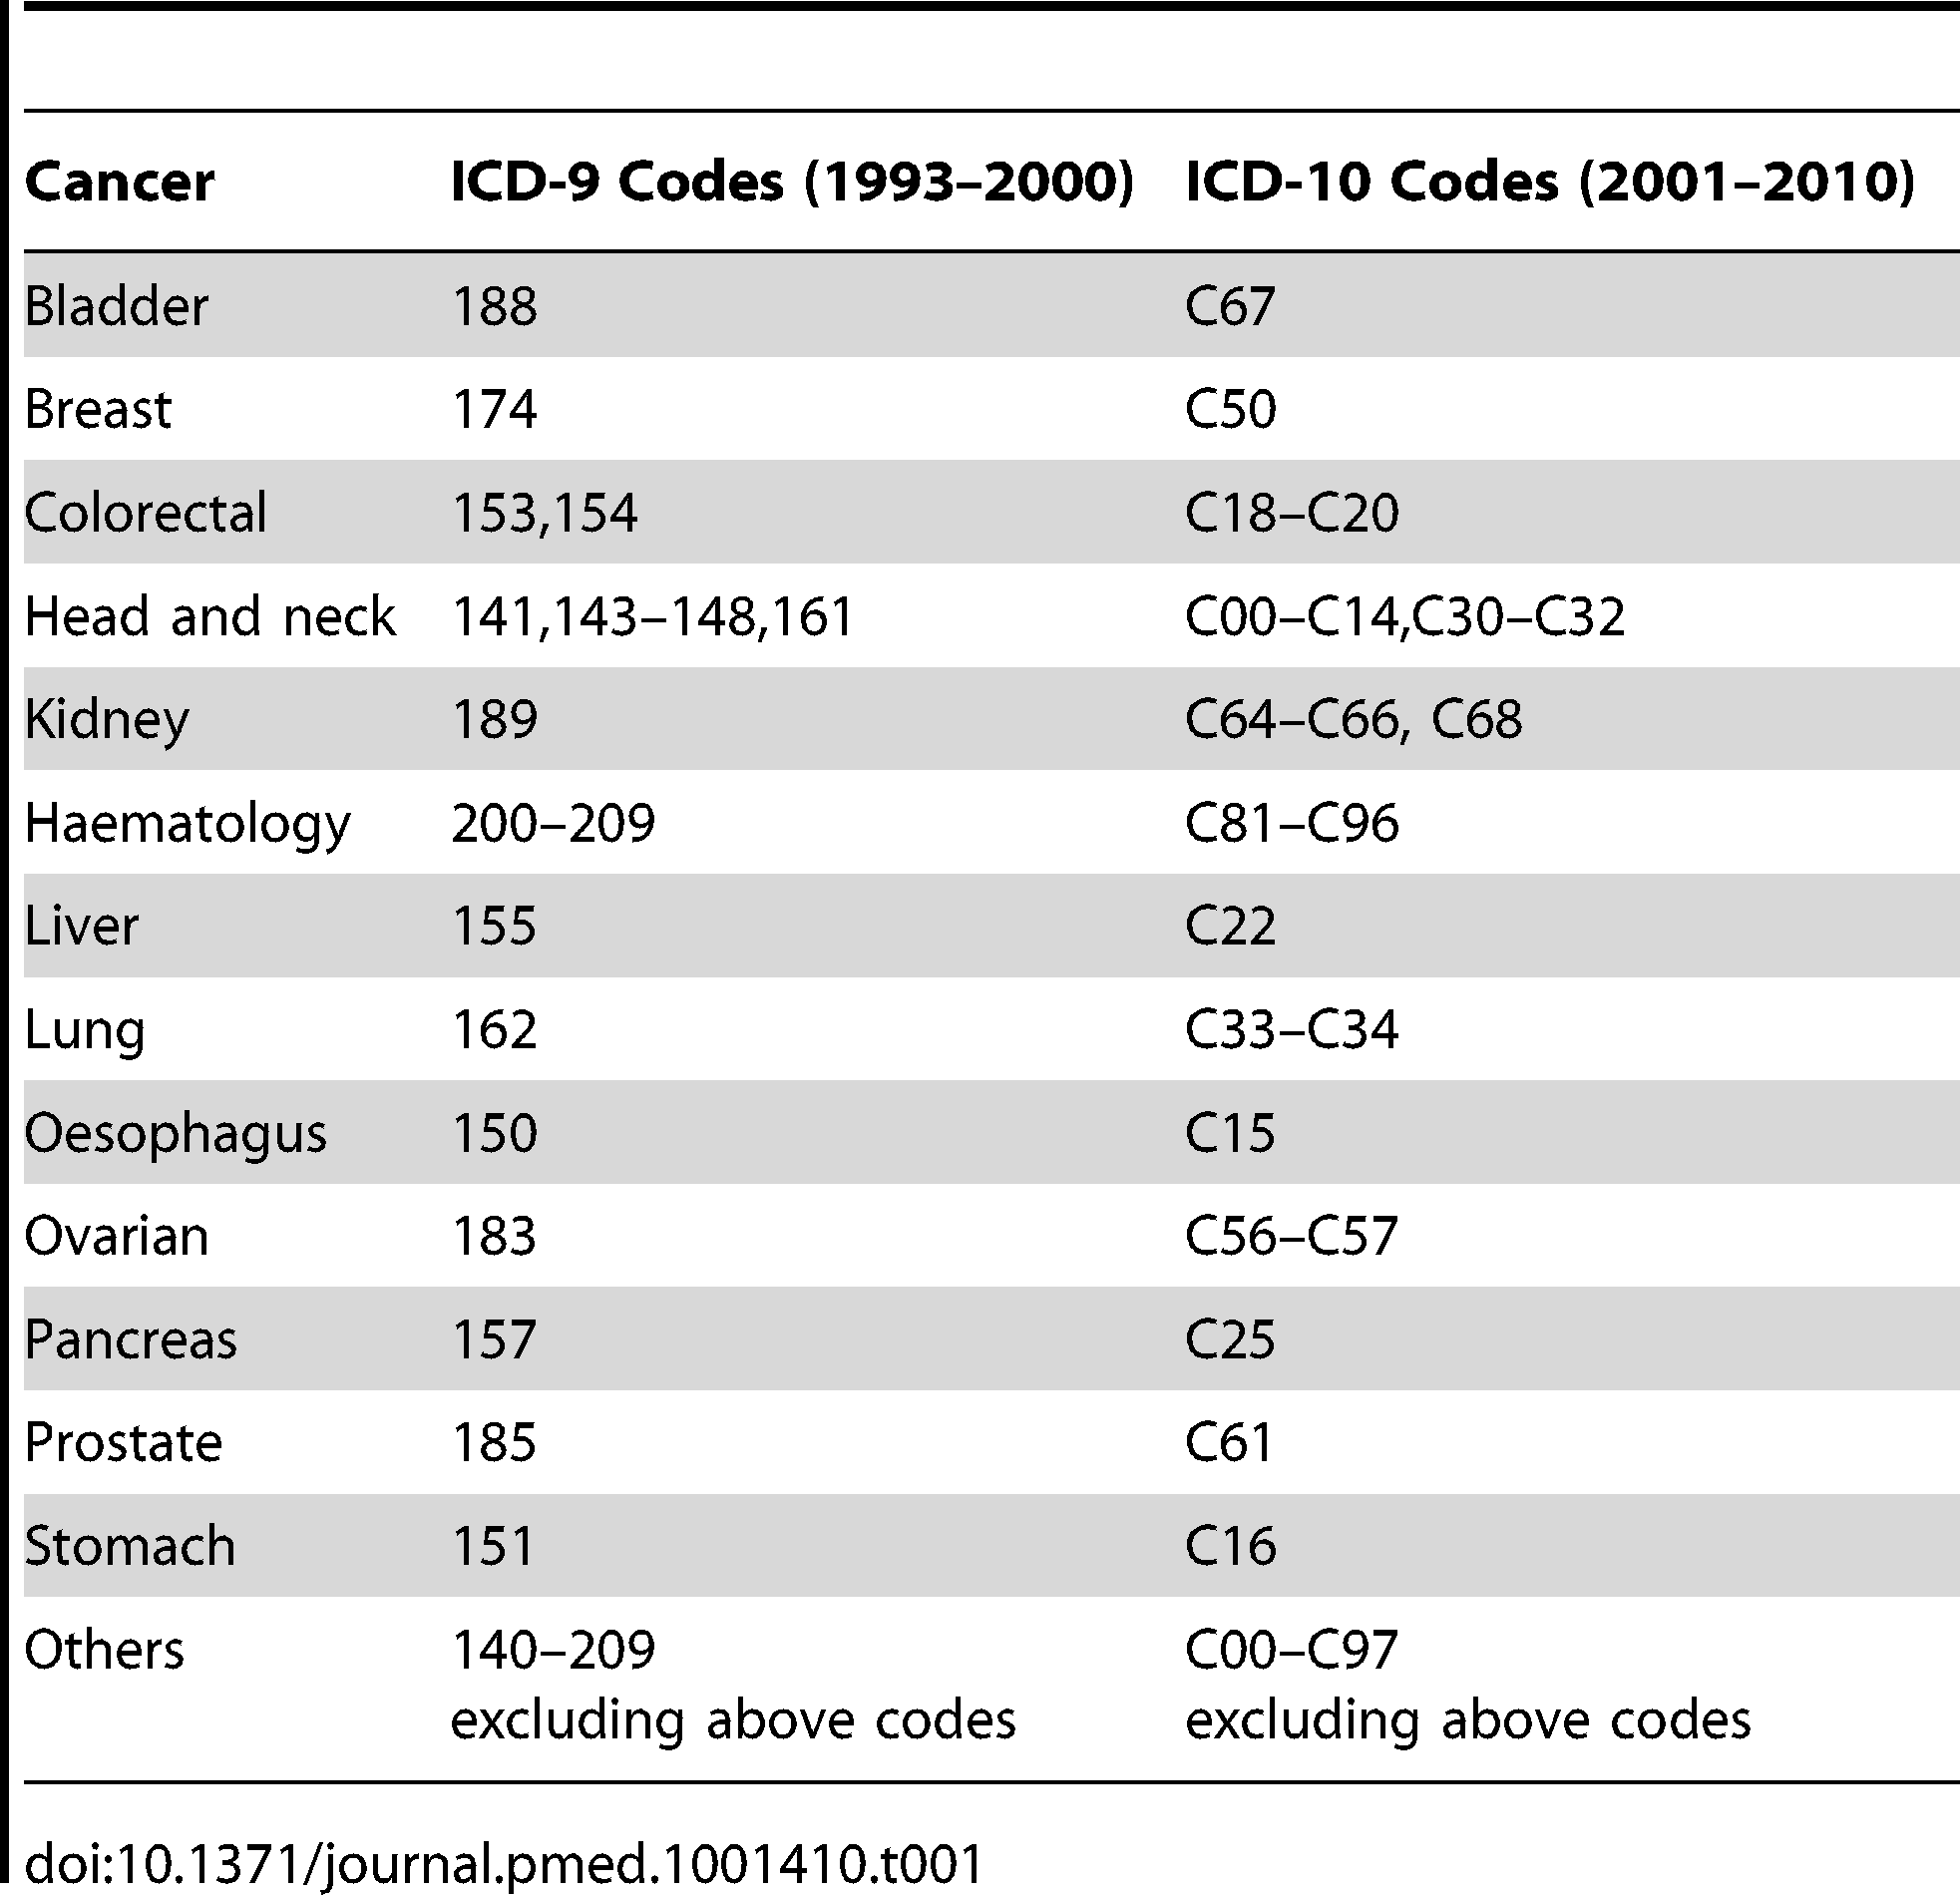 ICD-9 and ICD-10 codes used for the classification of underlying cause of death as cancers.